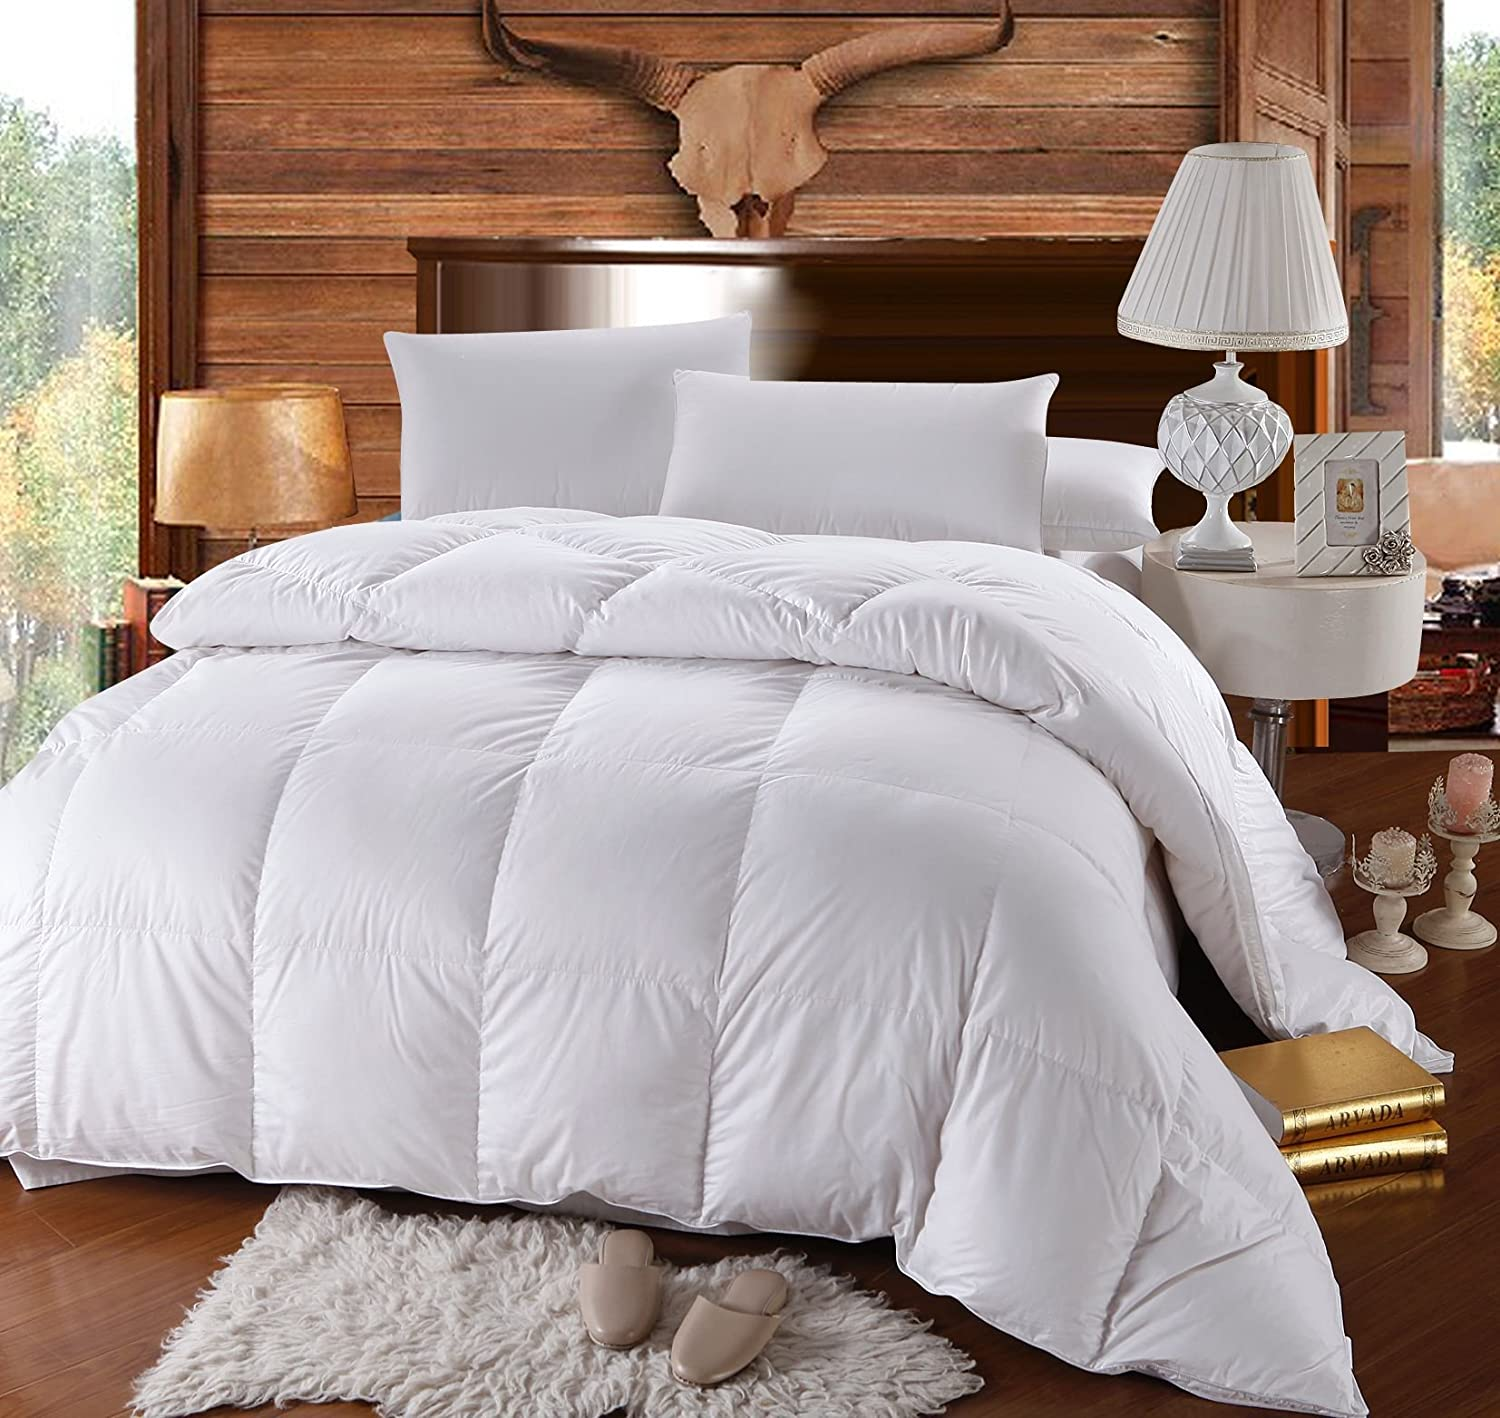 buy california acorn furniture wood cal bed brewton xxx market bedroom world king